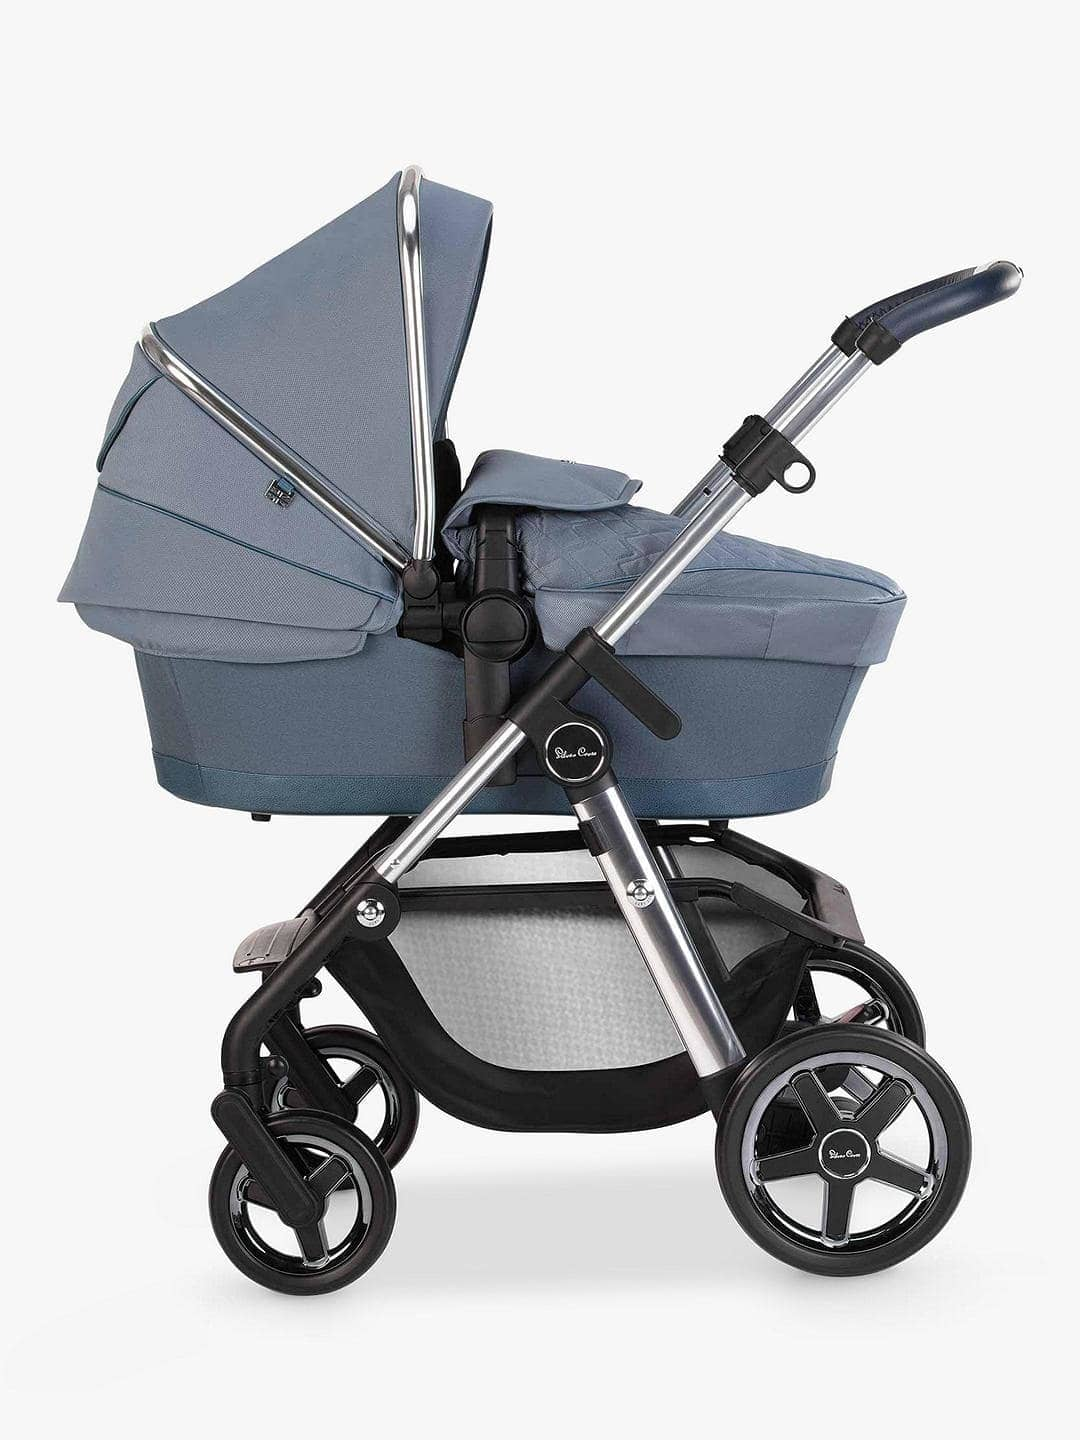 Glamourous new design  with pacific autograph pushchair.